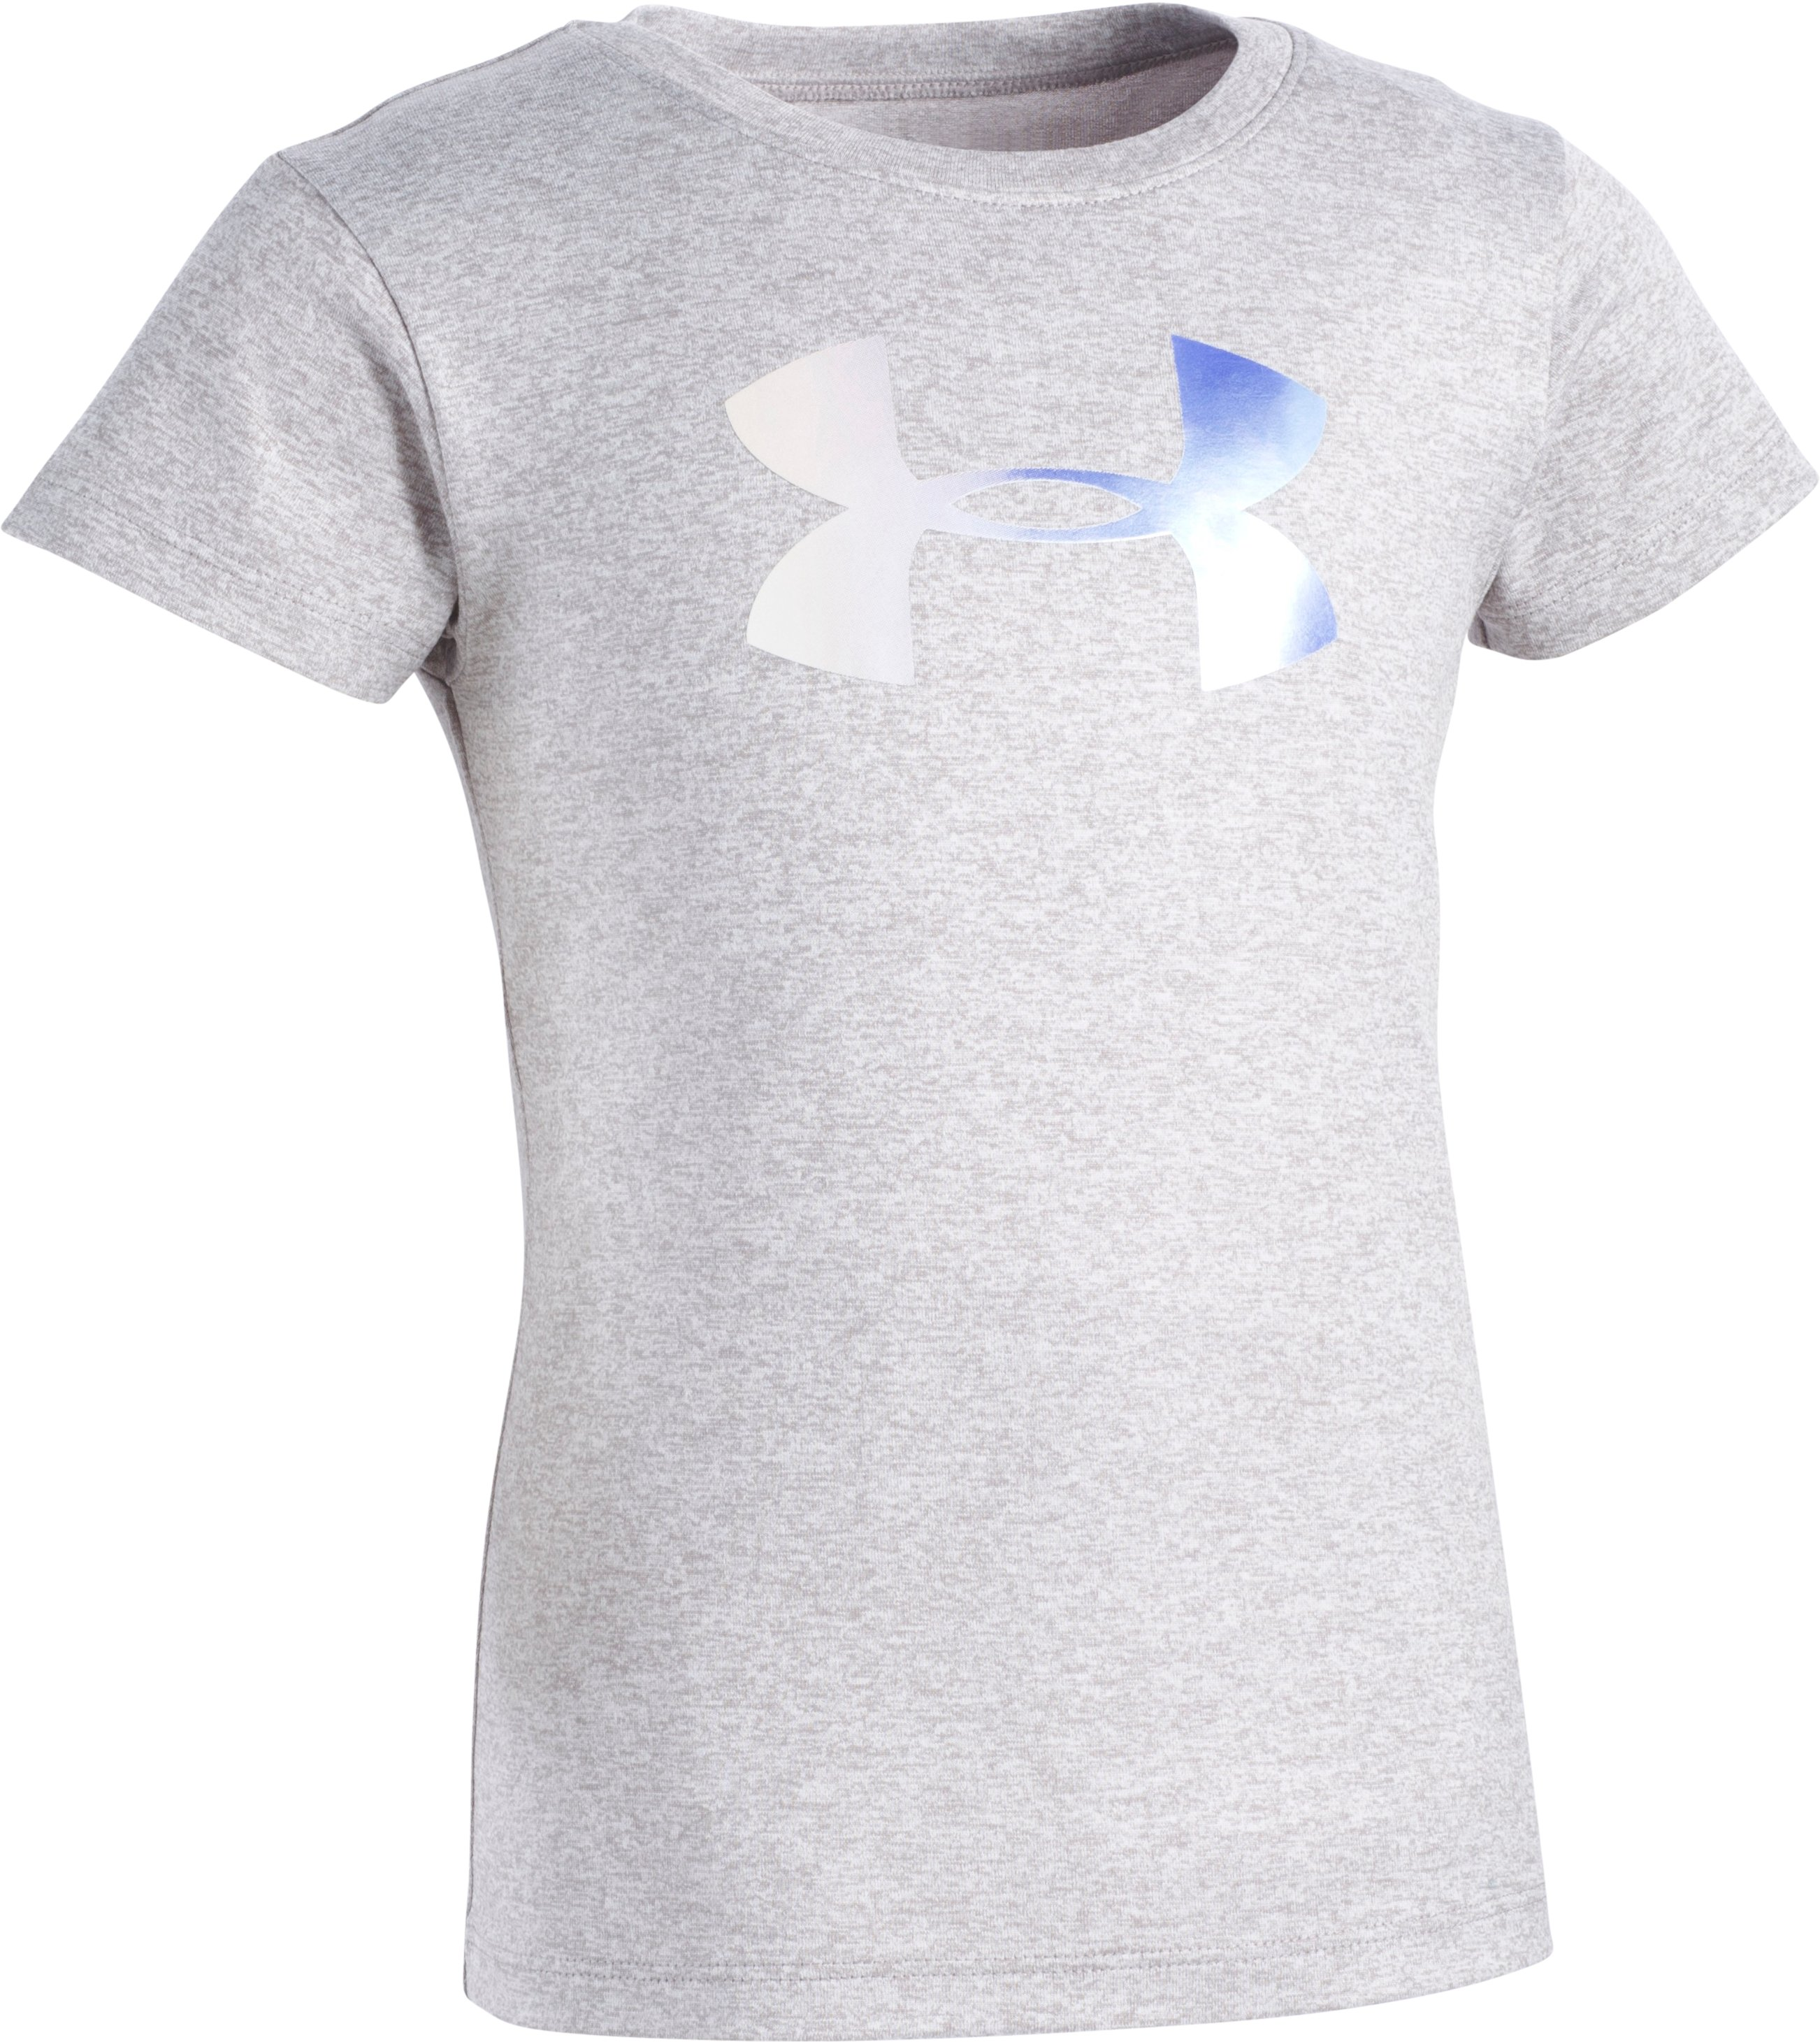 Girls' Pre-School UA Foil Big Logo Short Sleeve T-Shirt, STEEL MEDIUM HEATHER